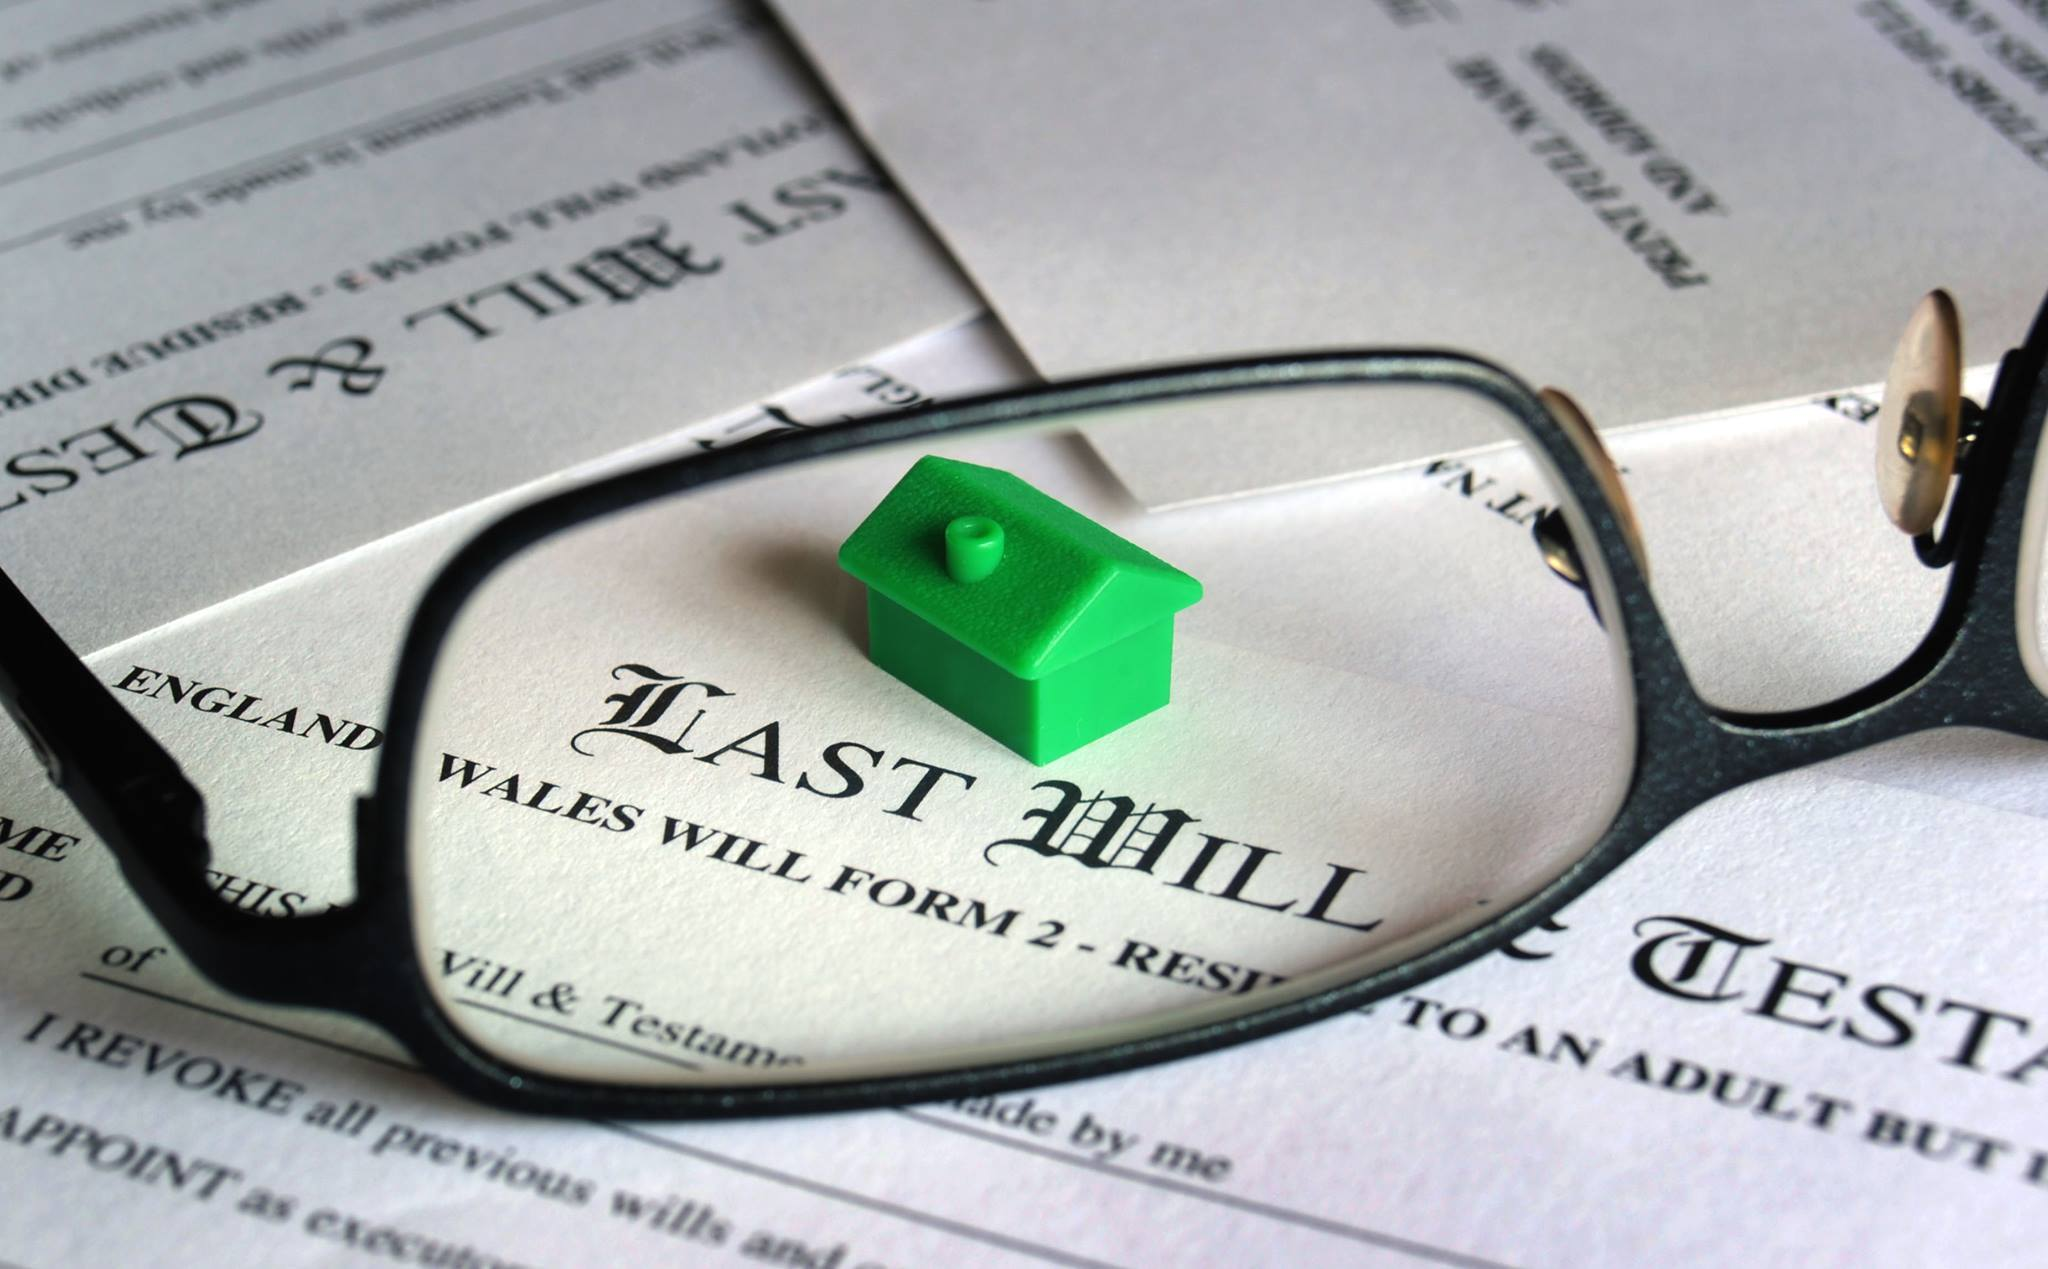 A Will covers any property solely owned in your name. A Will does not cover property co-owned by you with others listed as joint tenants, nor does your Will cover assets that pass directly to a beneficiary by contract, such as life insurance or retirement plans.